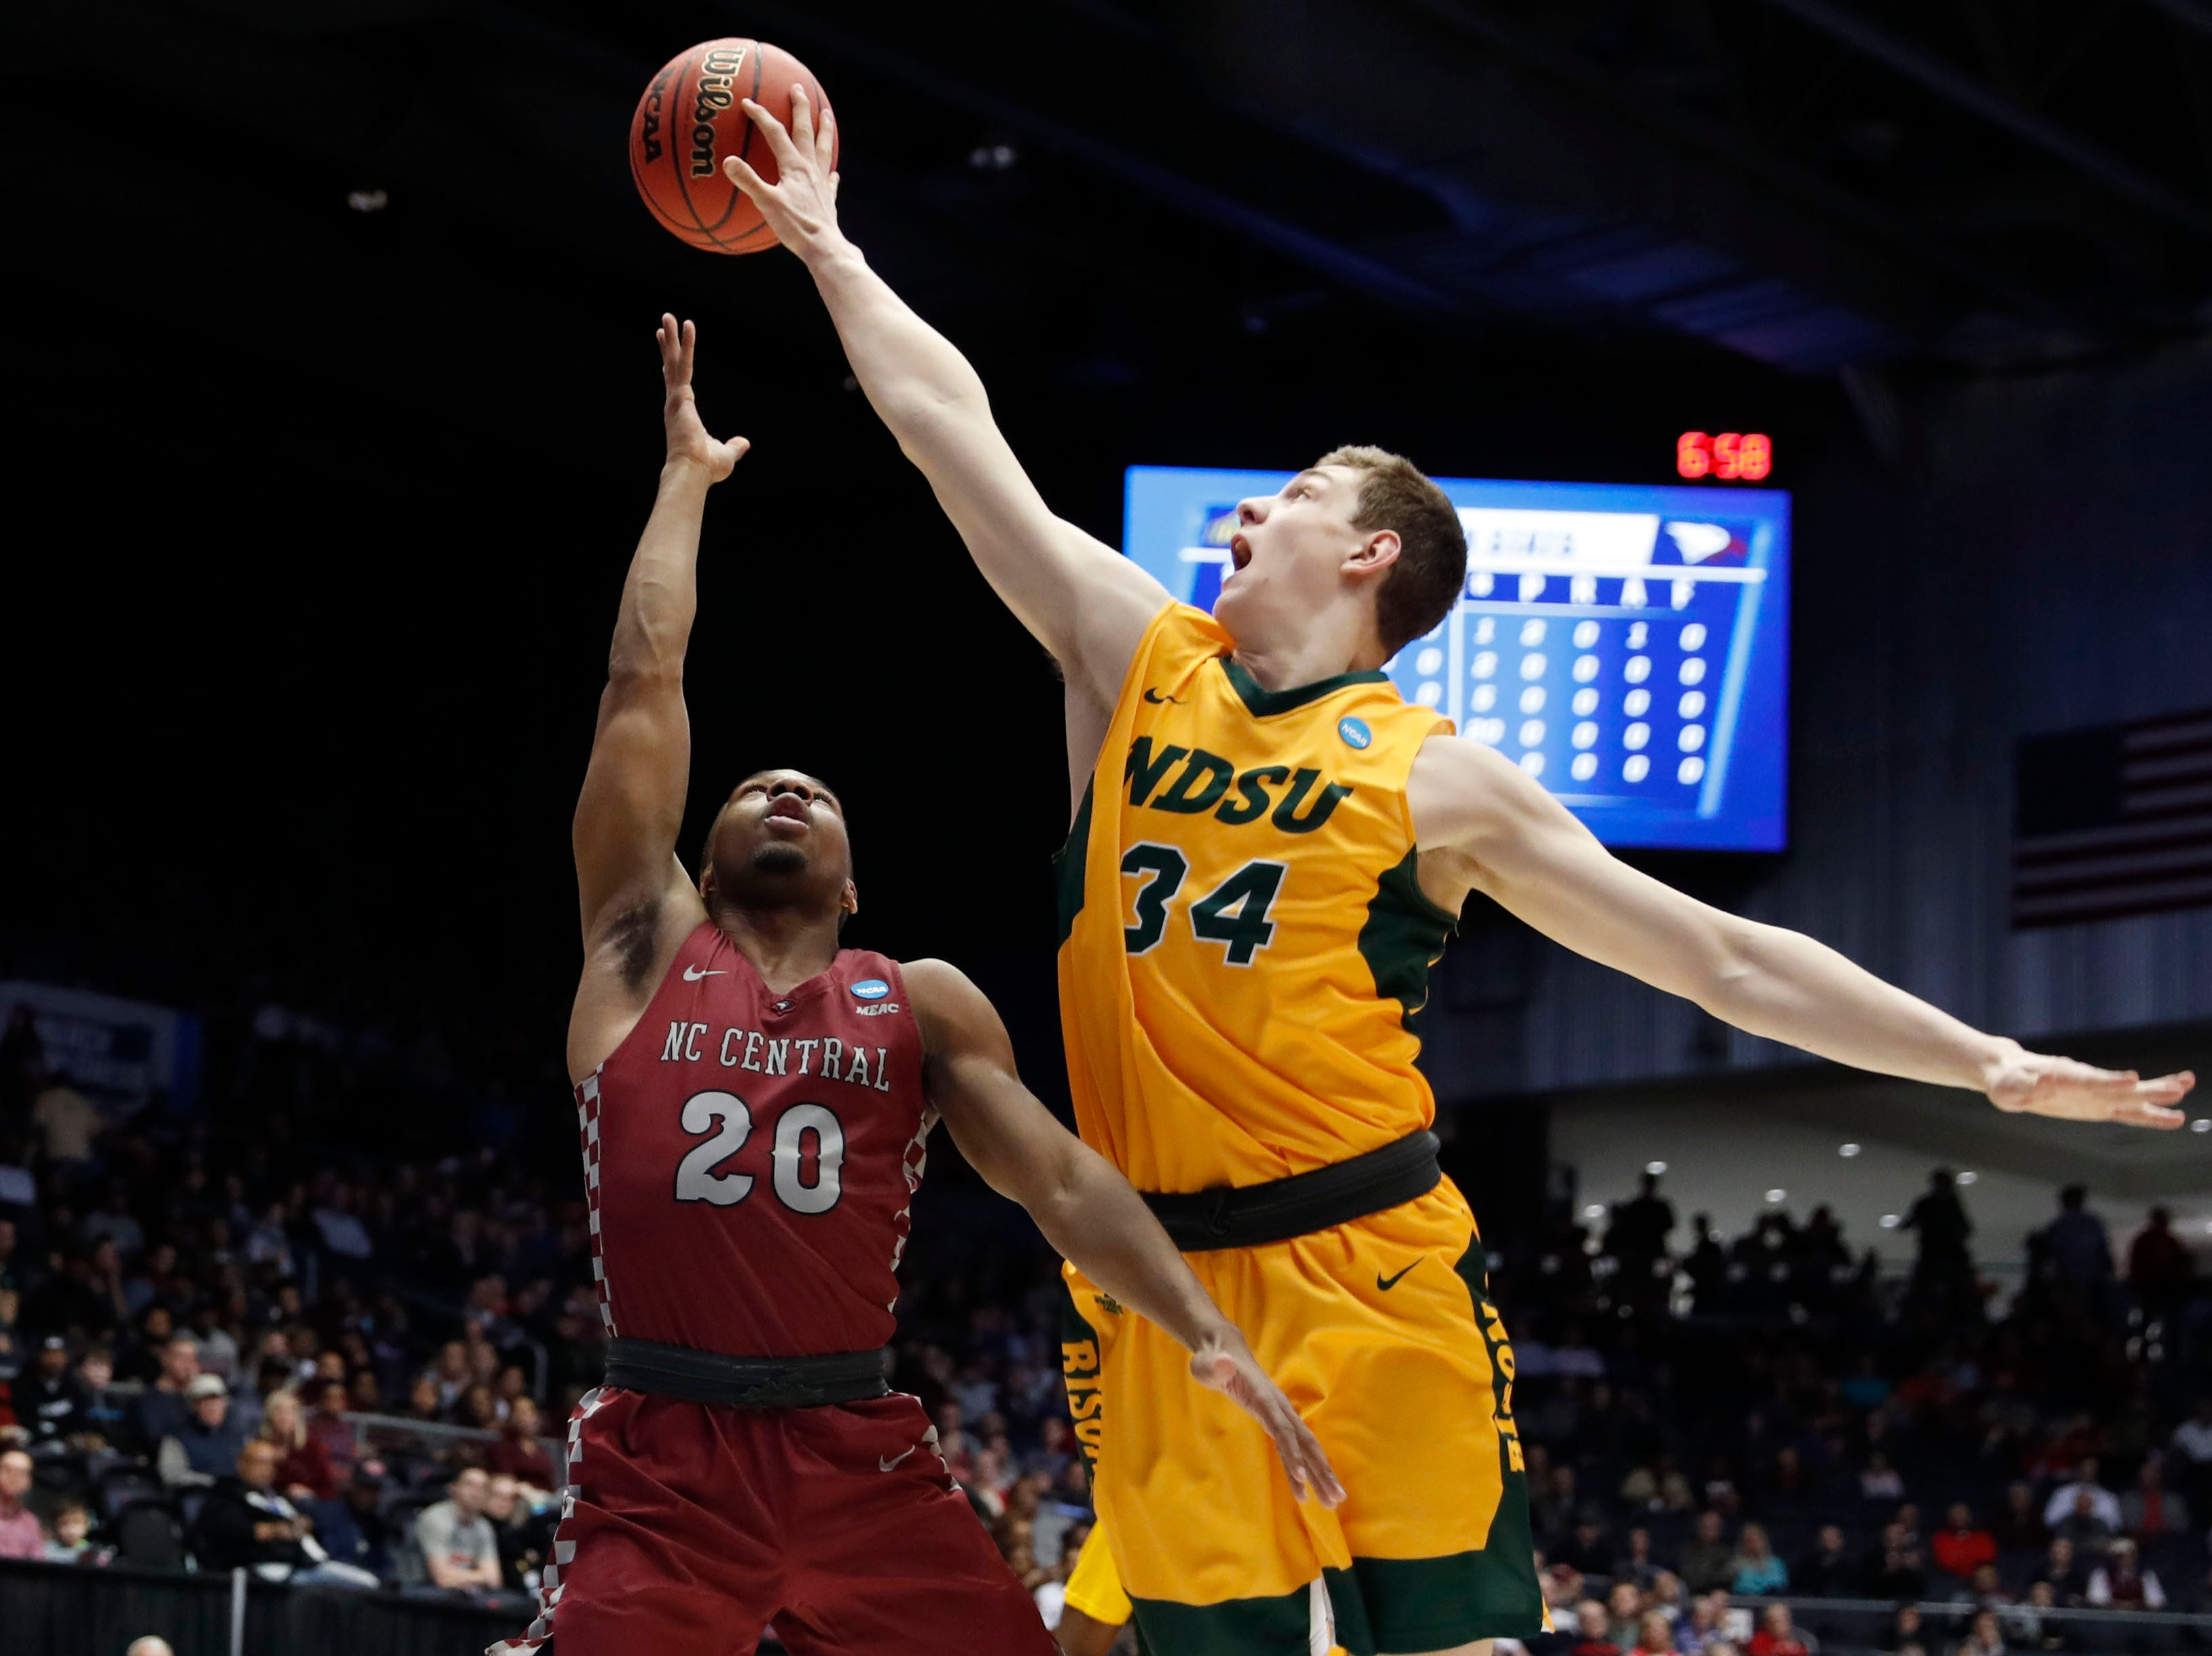 North Dakota State Bison forward Rocky Kreuser (34) blocks a shot from North Carolina Central Eagles guard Julian Walters (20) in the first half.